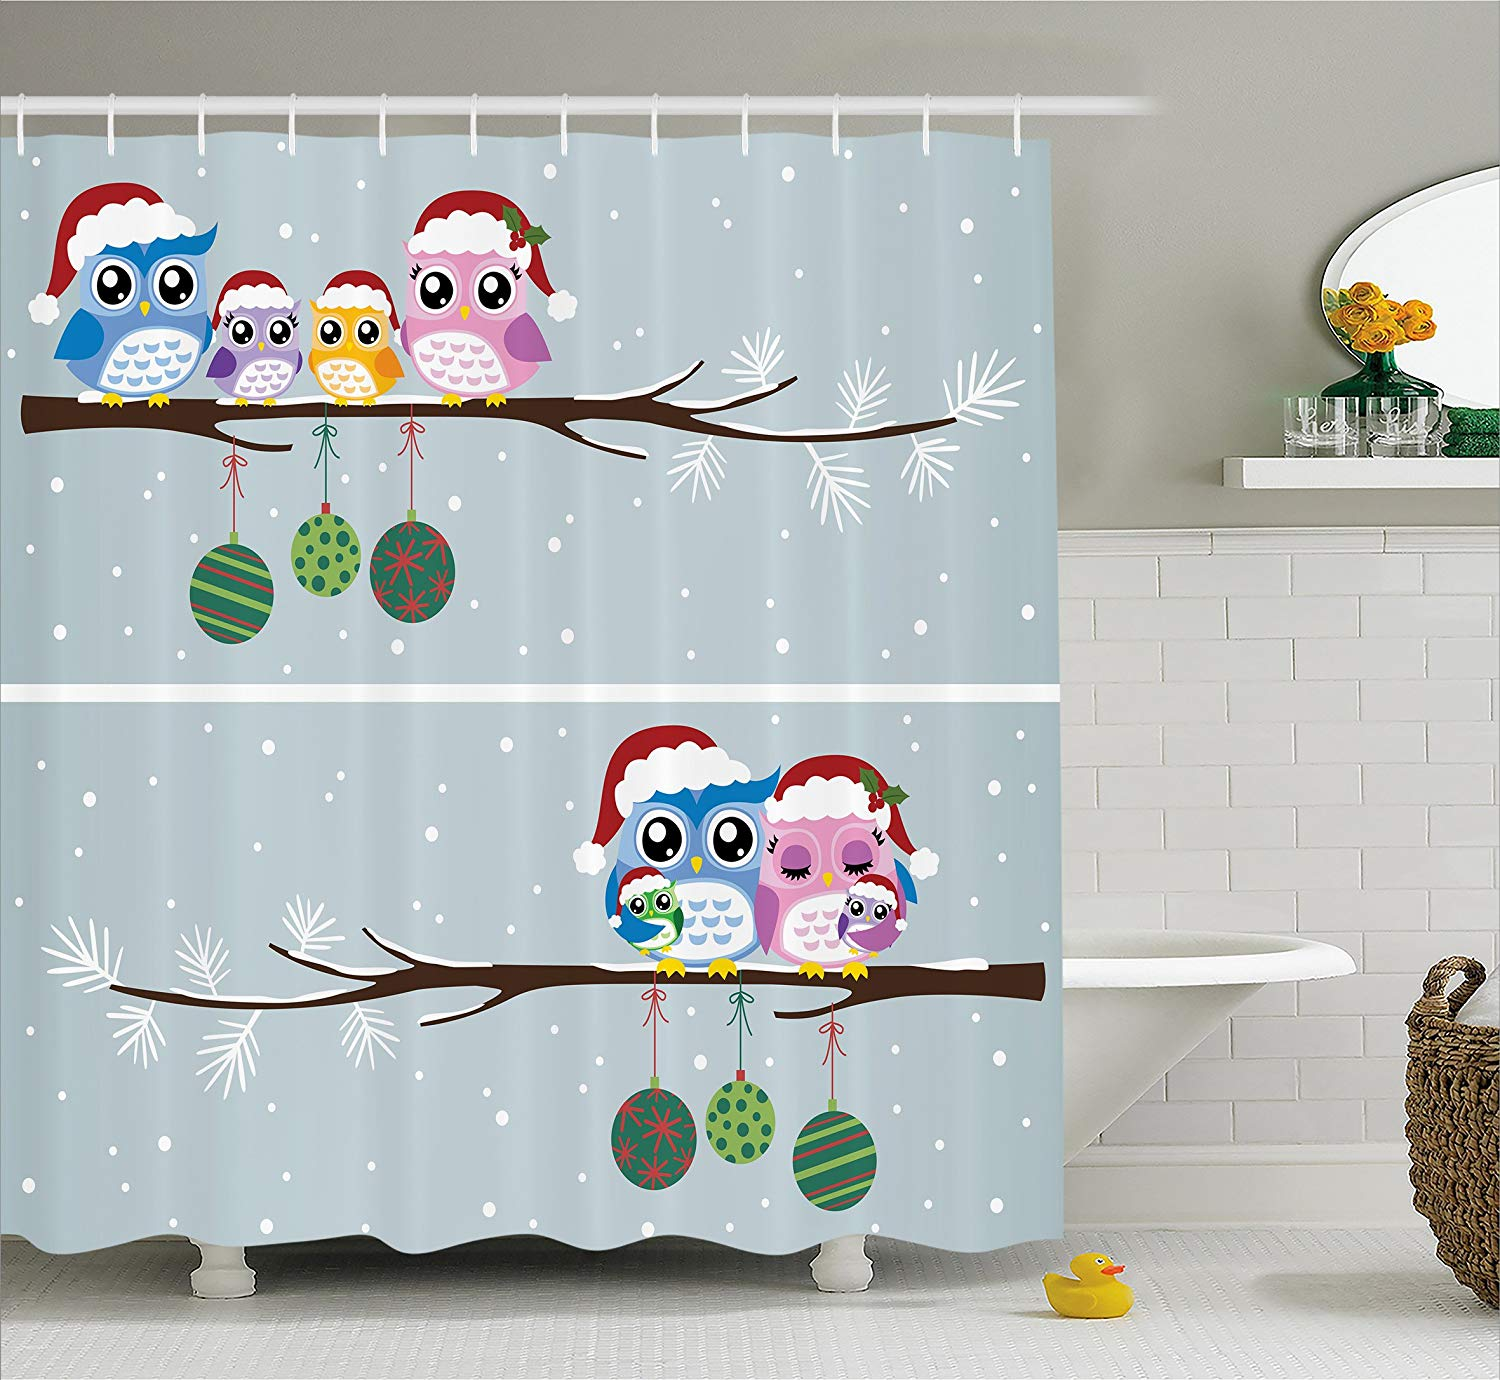 Christmas Shower Curtain Owl On Tree Branch Celebration